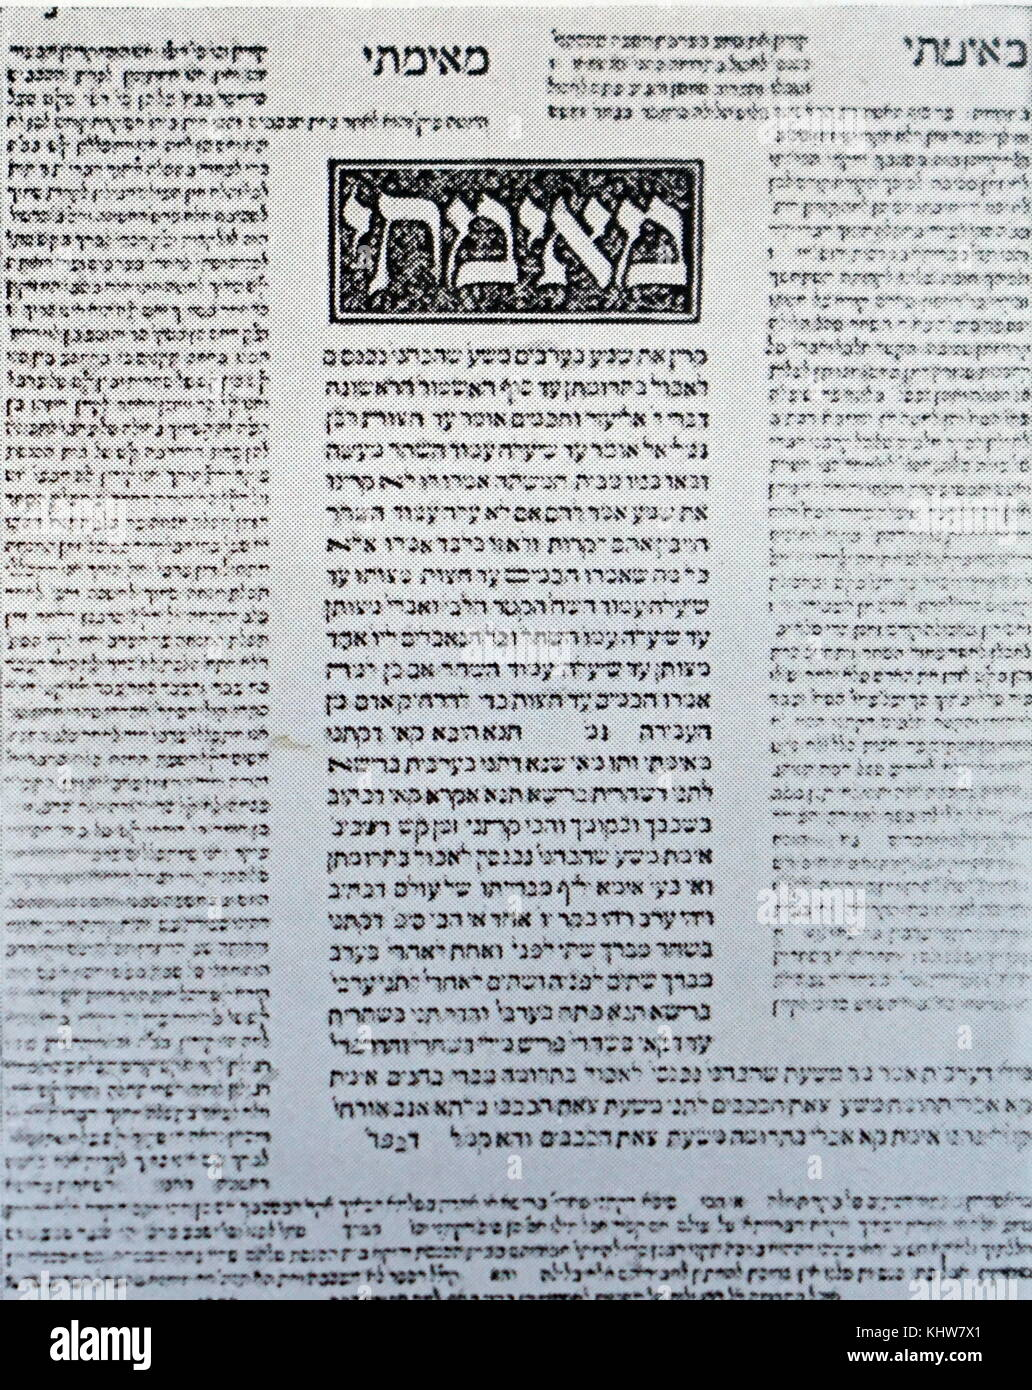 Page from the Bomberg Babylonian Talmud by Daniel Bomberg. The first complete edition of the Babylonian Talmud was - Stock Image